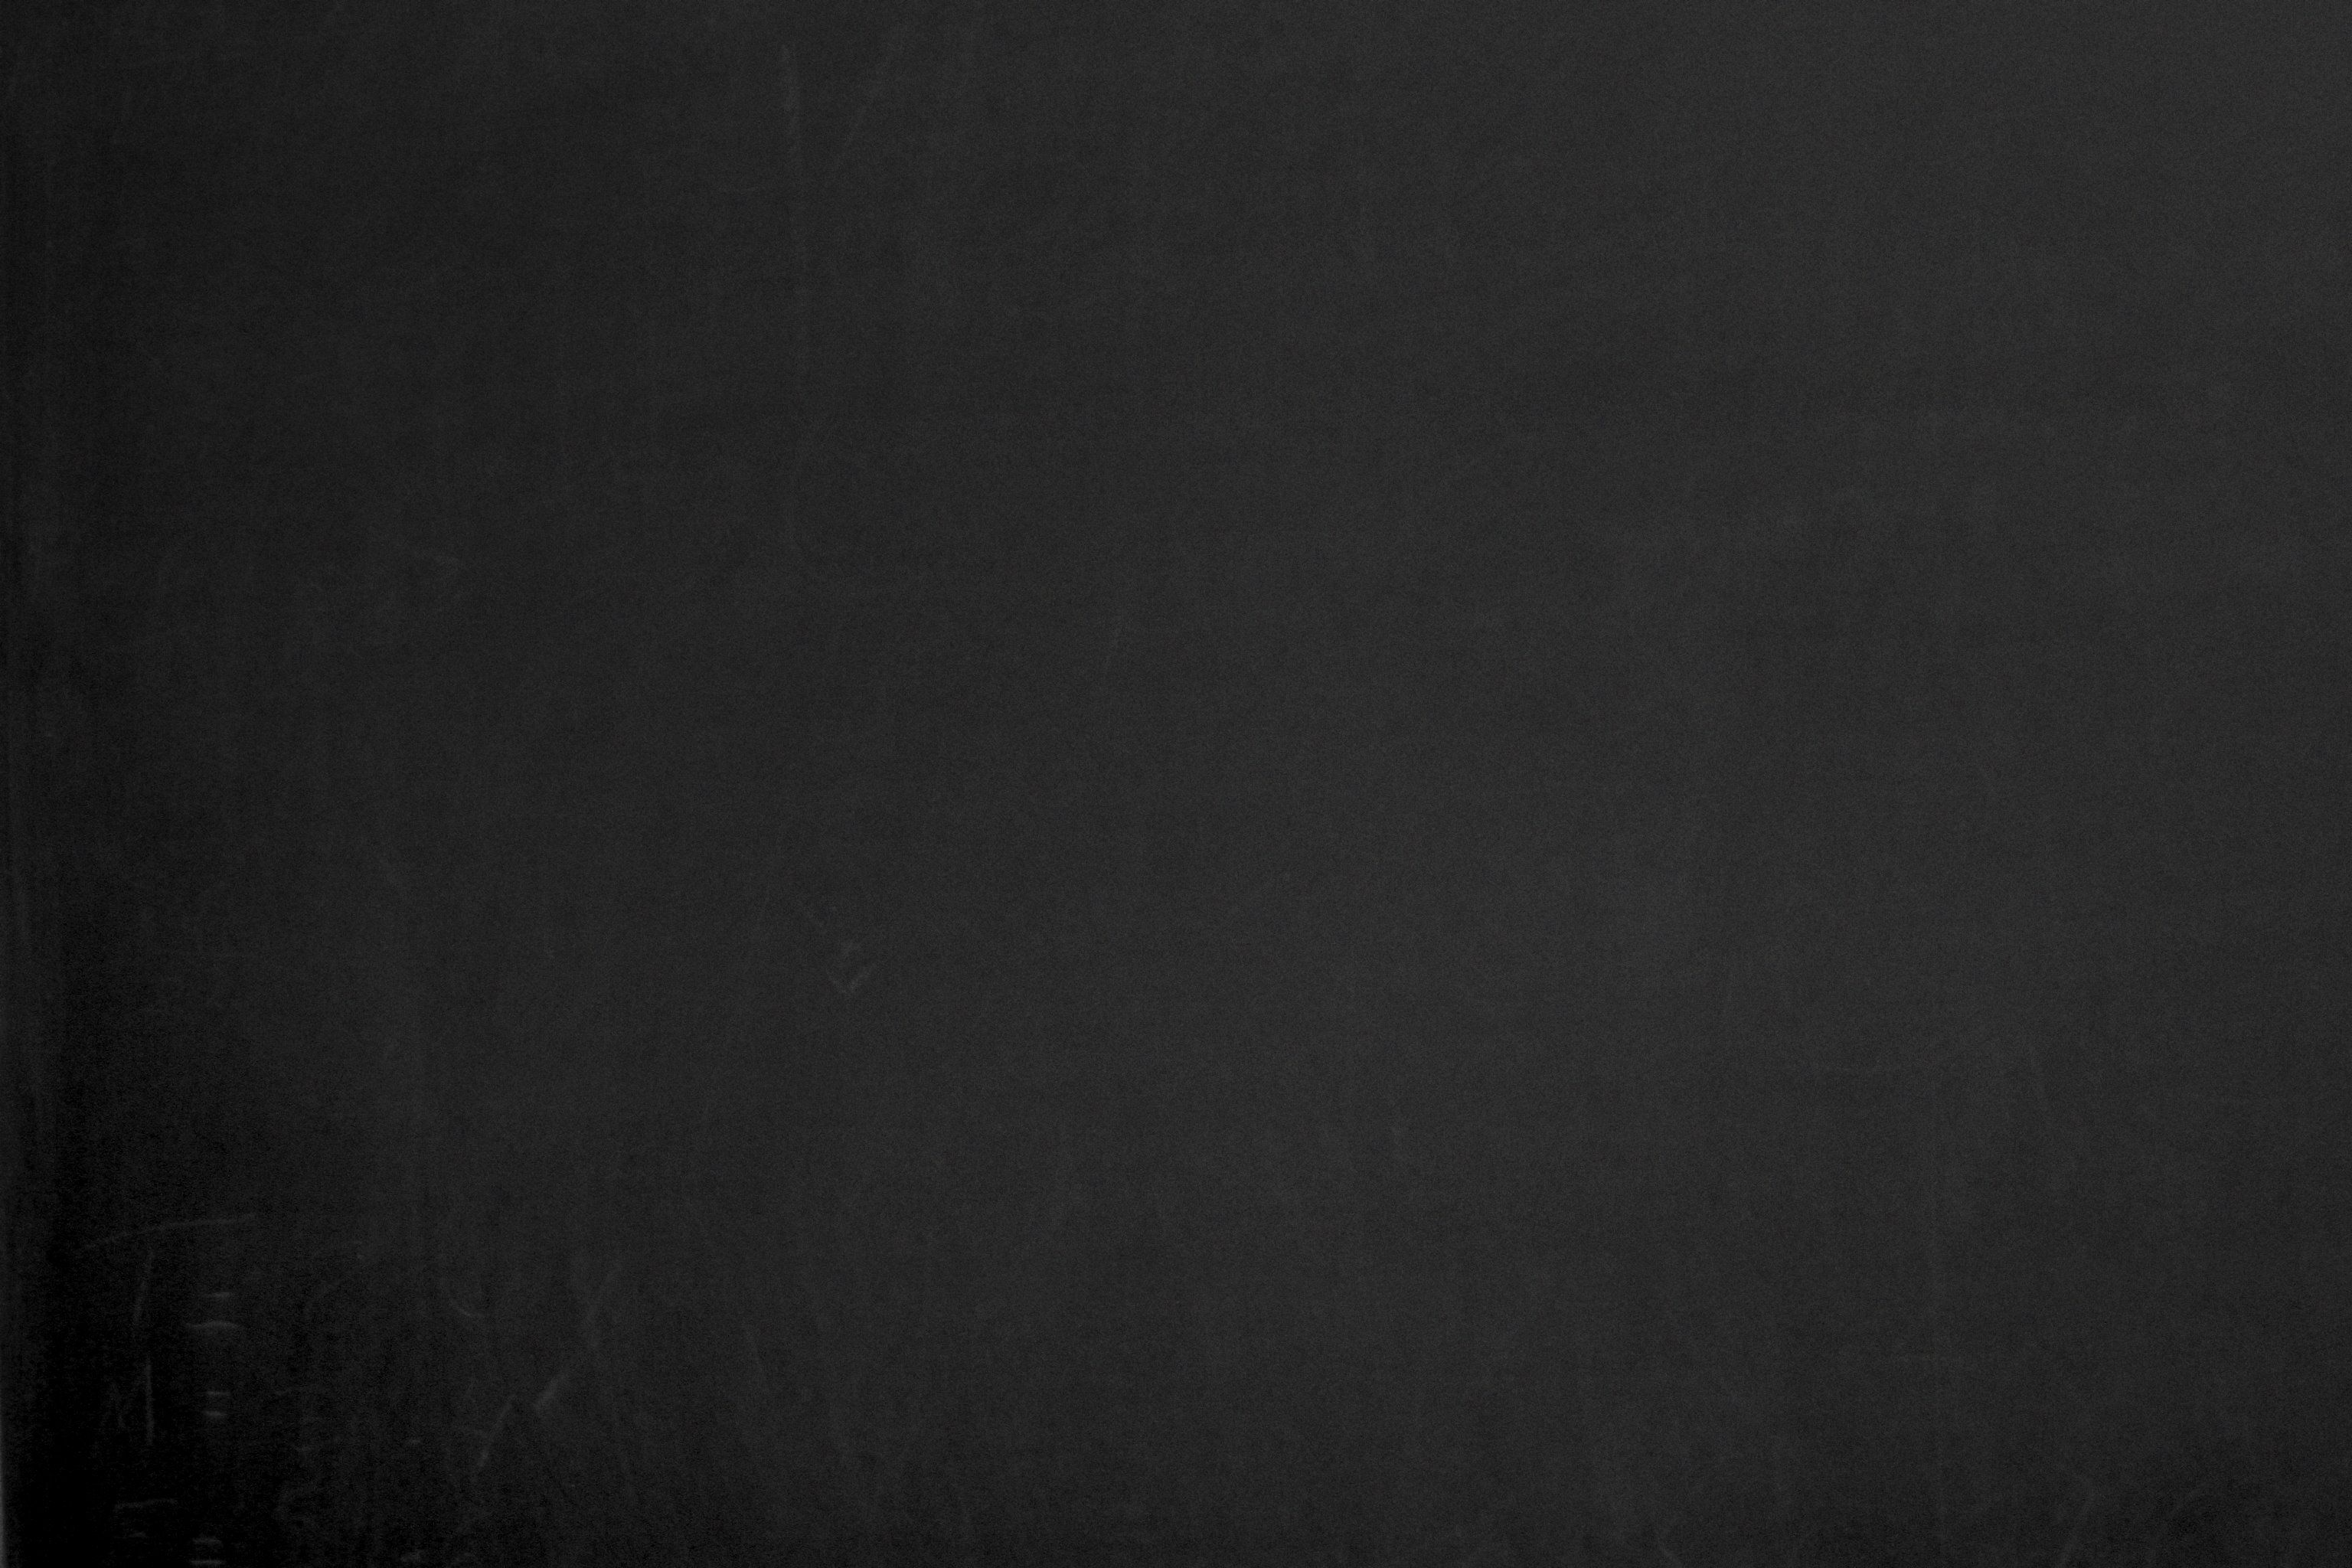 chalkboard wallpaper high quality z31 3072x2048 px 75524 kb other background portrait black blackboard background ppt border font free green background hd